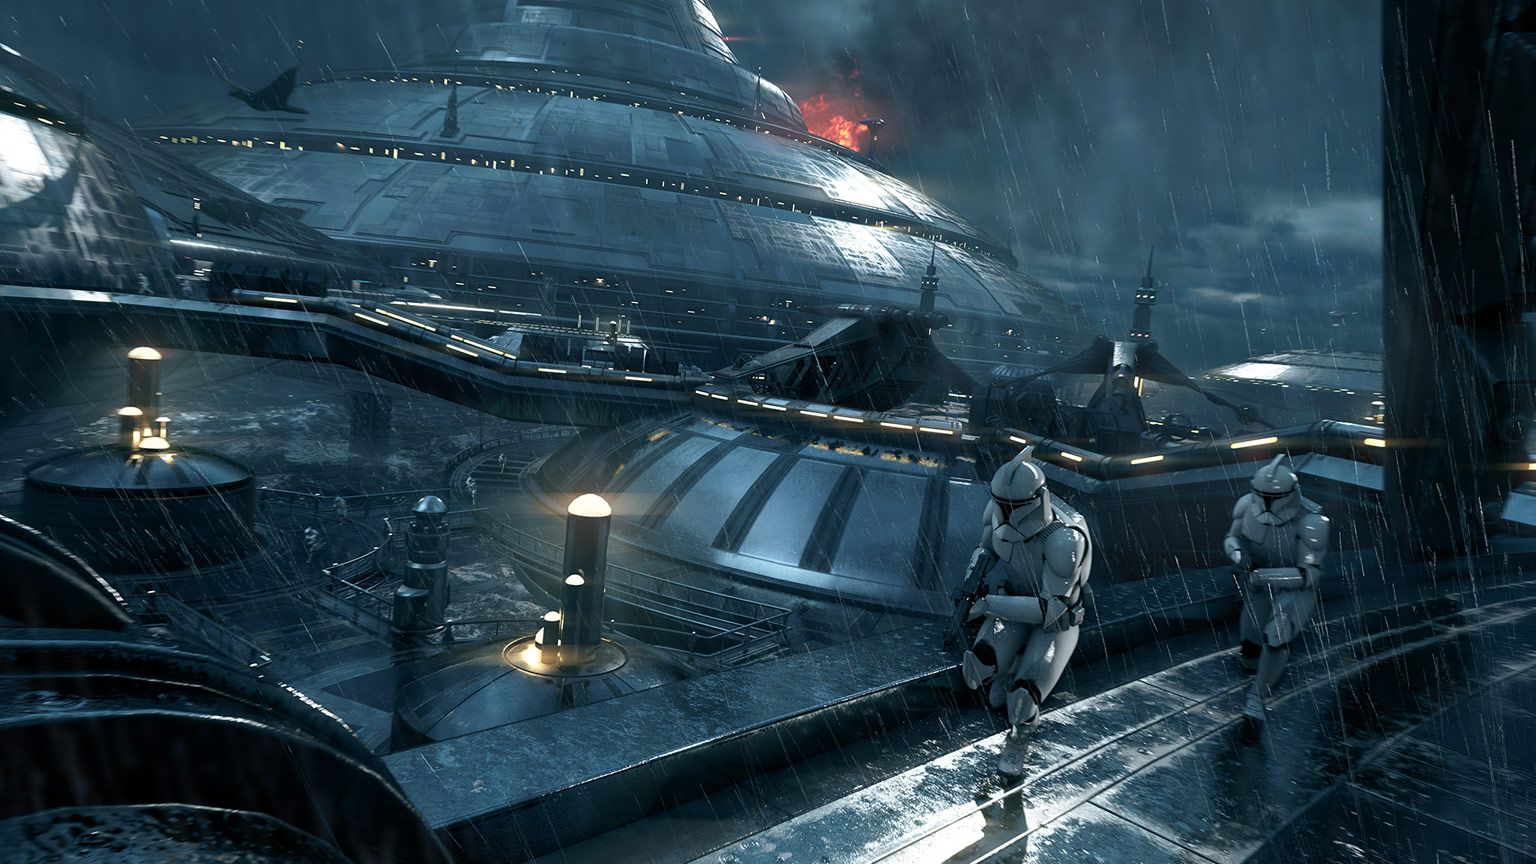 The Kamino map in Star Wars Battlefront II.